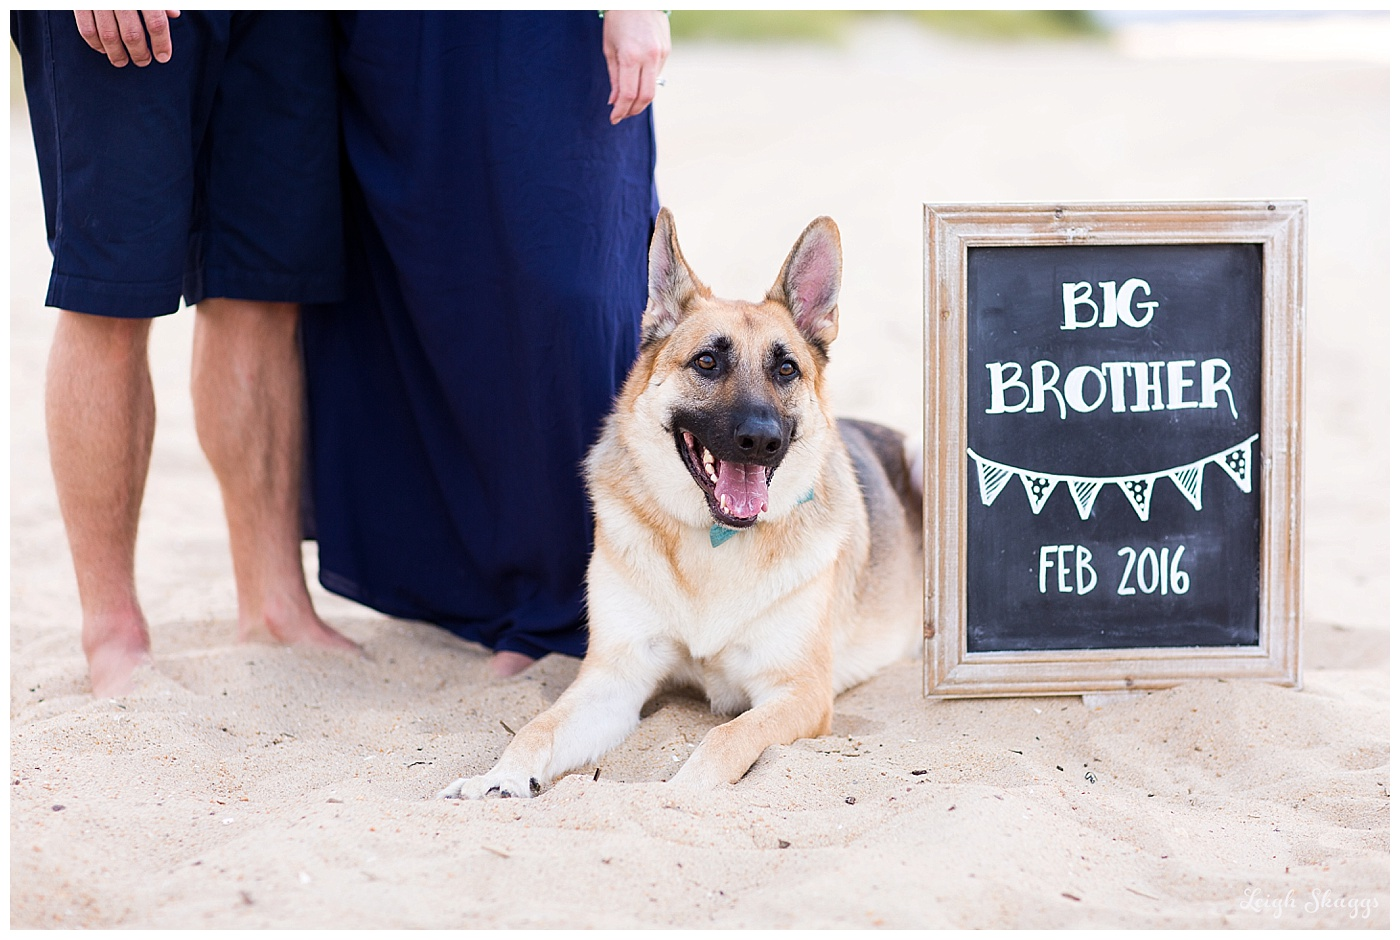 Guess Whos Expecting?!?!?!